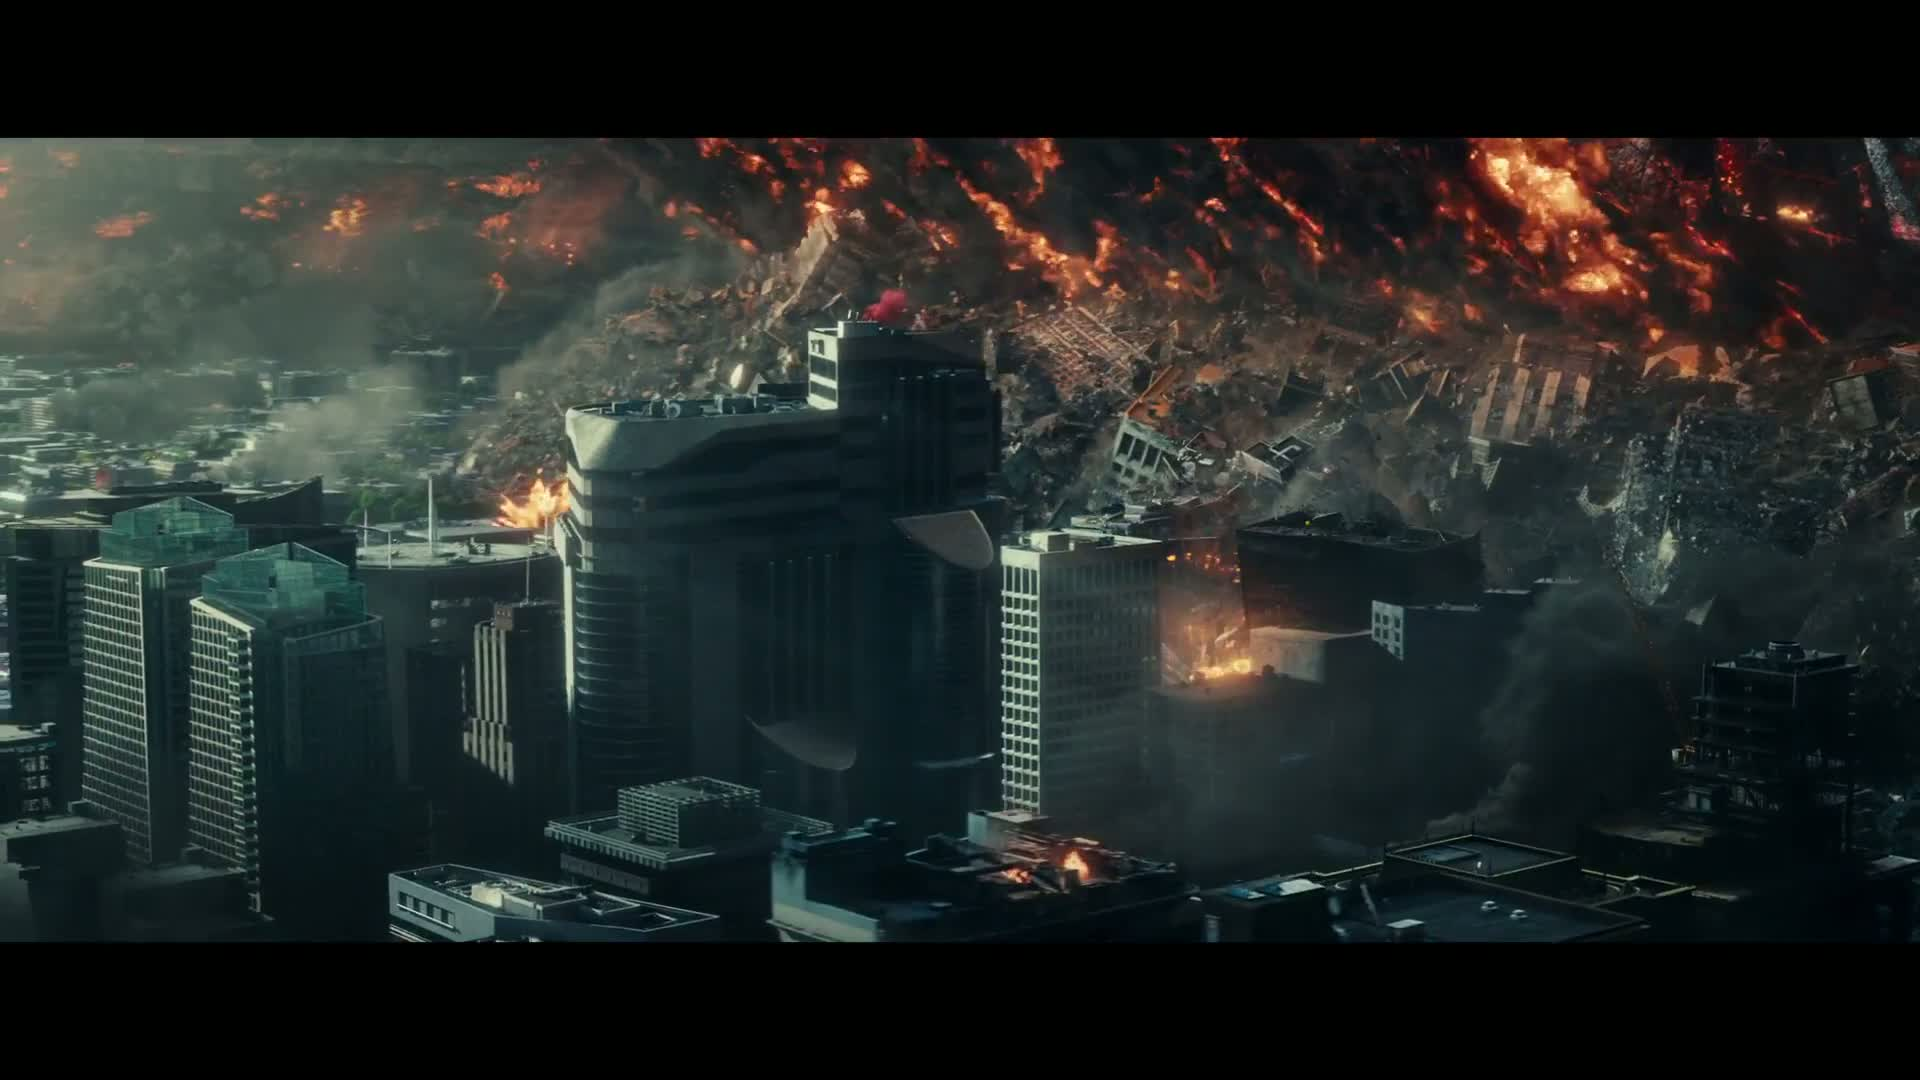 Screenshot from Independence Day (2016) trailer. Do you see that crane being torn to pieces? Me neither, but it's in there somewhere, with a lot of detail. I made it.